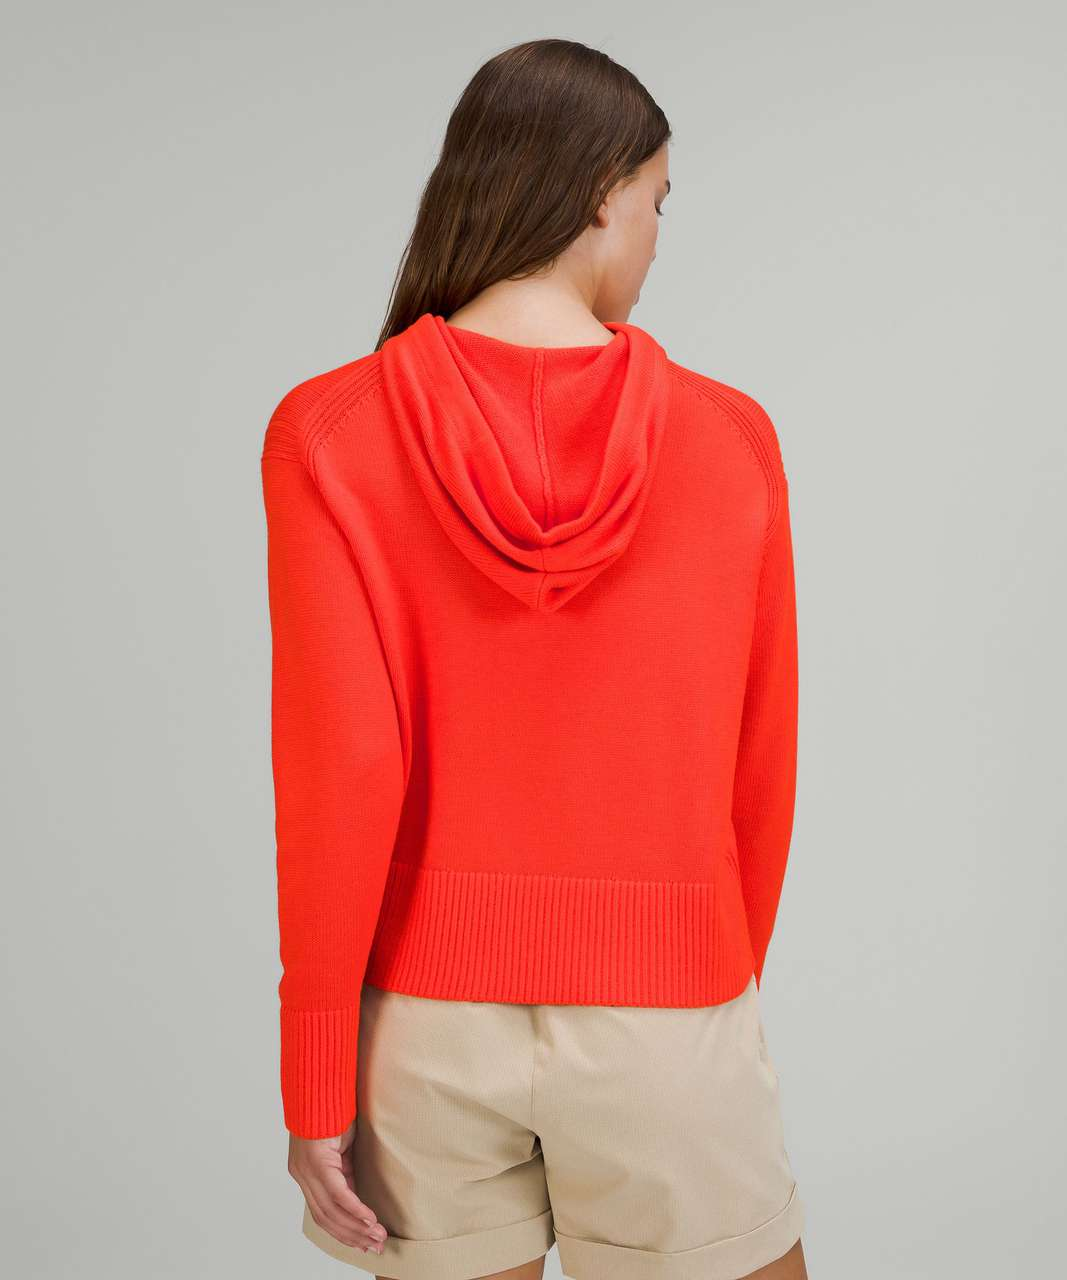 Lululemon Double Knit Sweater Hoodie - Autumn Red